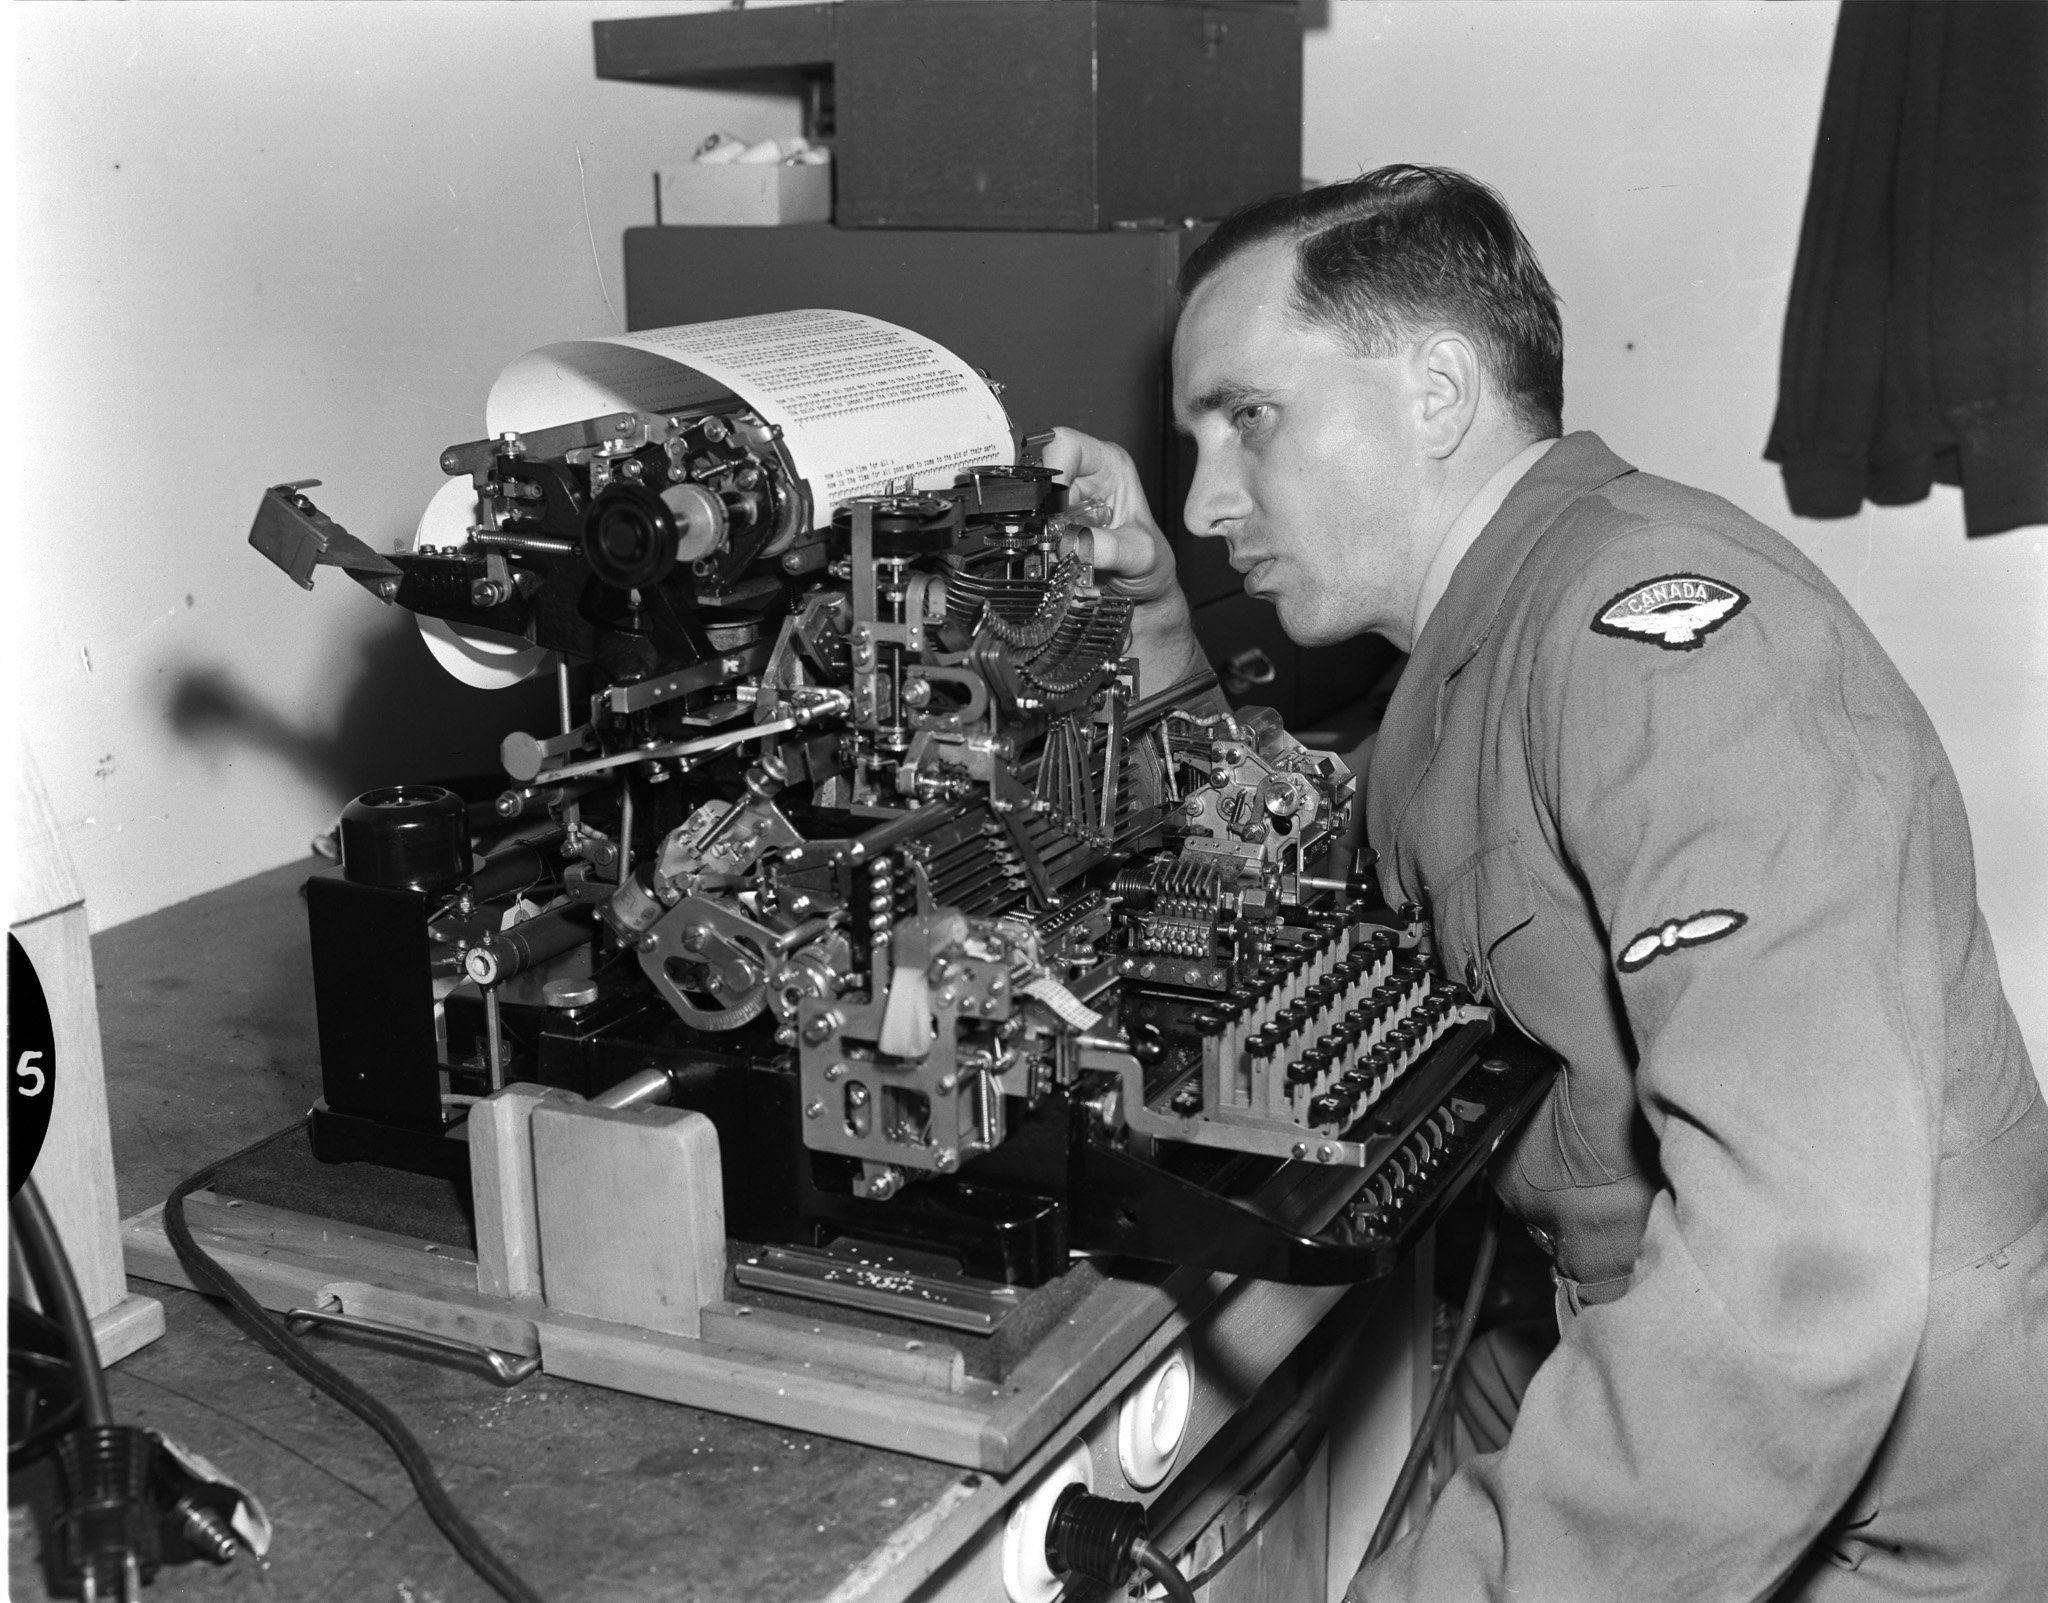 Leading Aircraftman C.G. Ross, a telegraph technician in the Telecommunications Branch at the RCAF's No. 3 (Fighter) Wing in Zweibrucken, Germany, repairs a teletype machine used in transmitting messages from one base to another. PHOTO: DND Archives, PL-81188